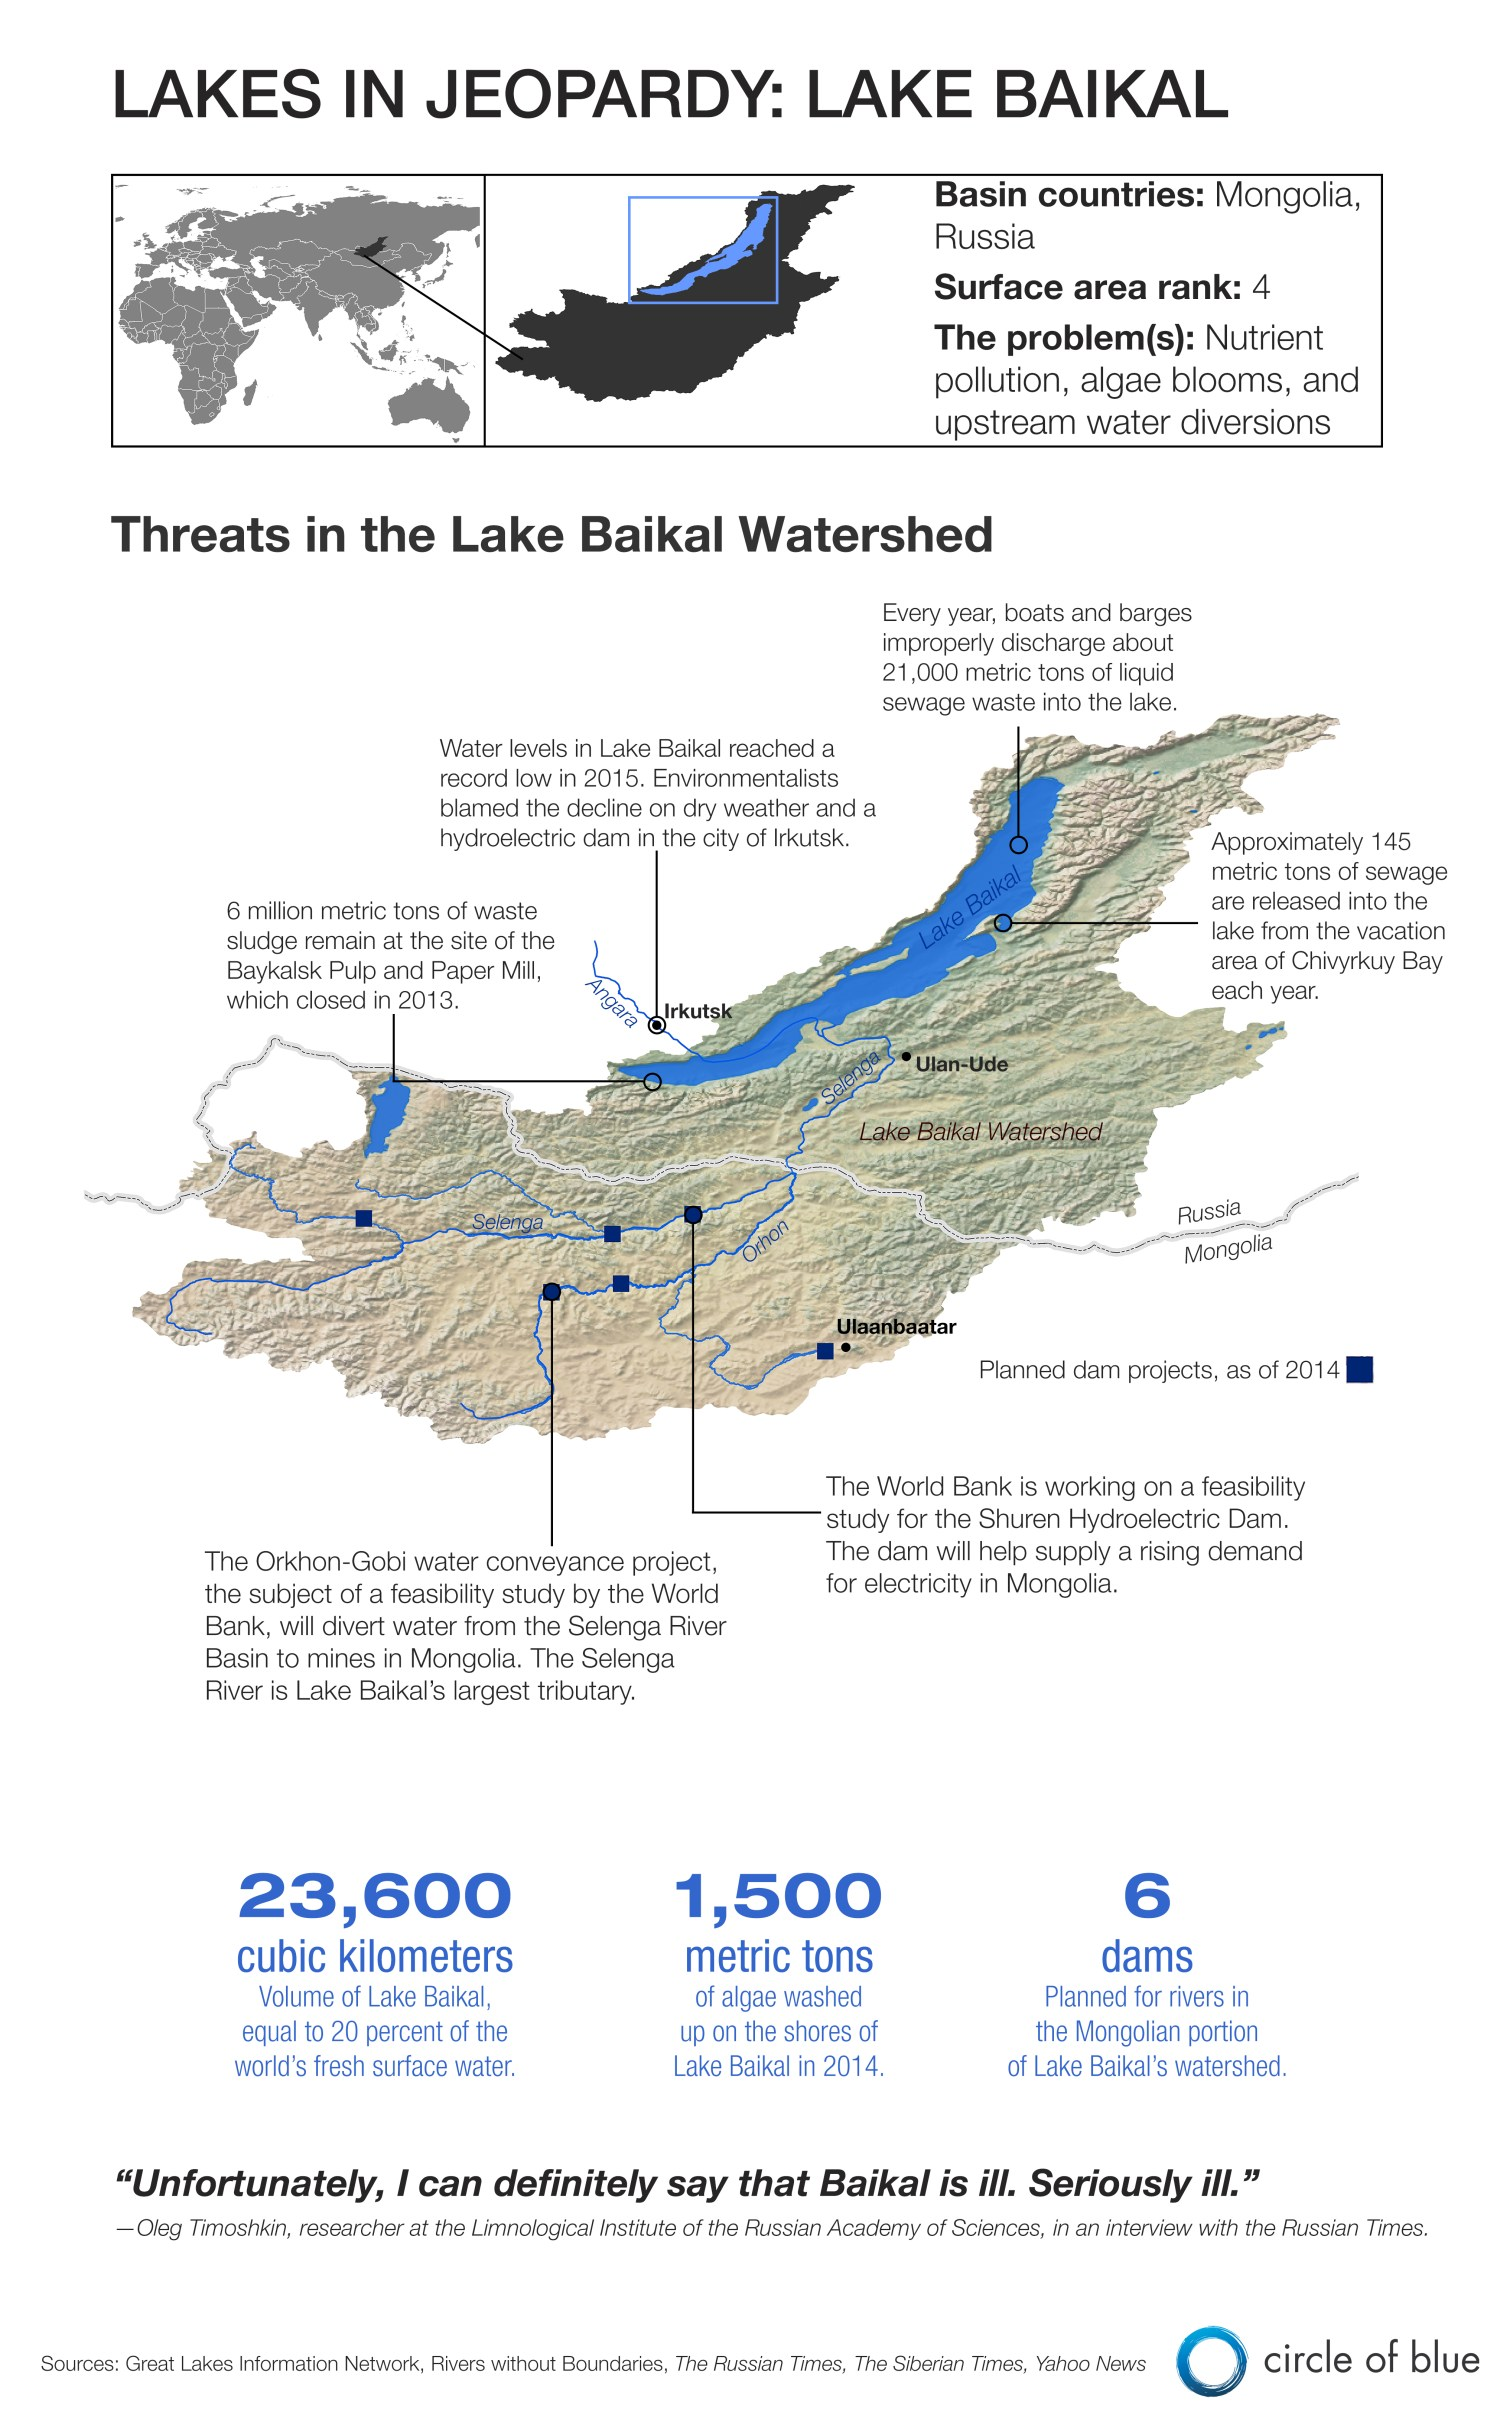 Infographic Graphic Map Lake Baikal Russia Mongolia Lakes In Jeopardy water quality nutrient pollution Kaye LaFond Circle of Blue